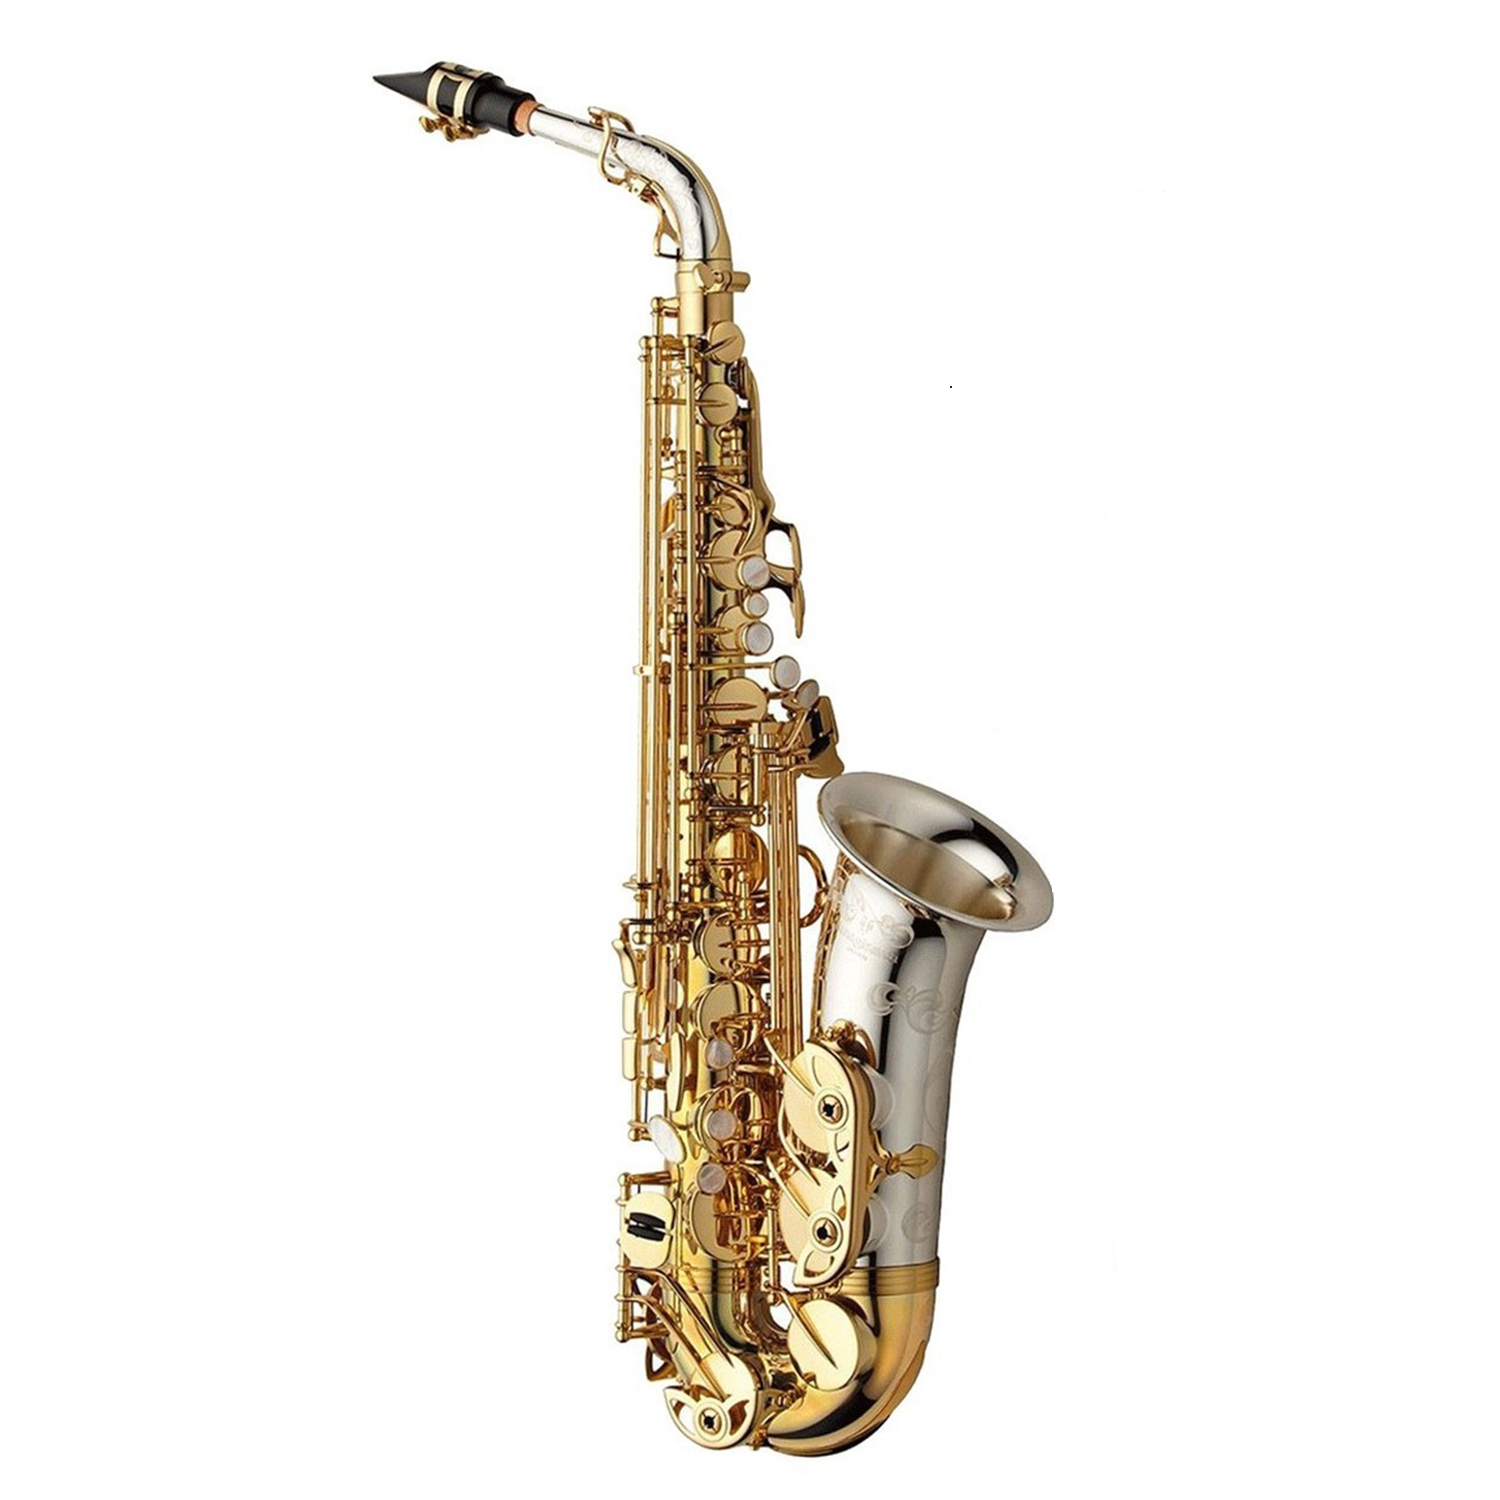 Yanagisawa WO Series Elite Alto Saxophone - Sterling Silver Bell and Neck